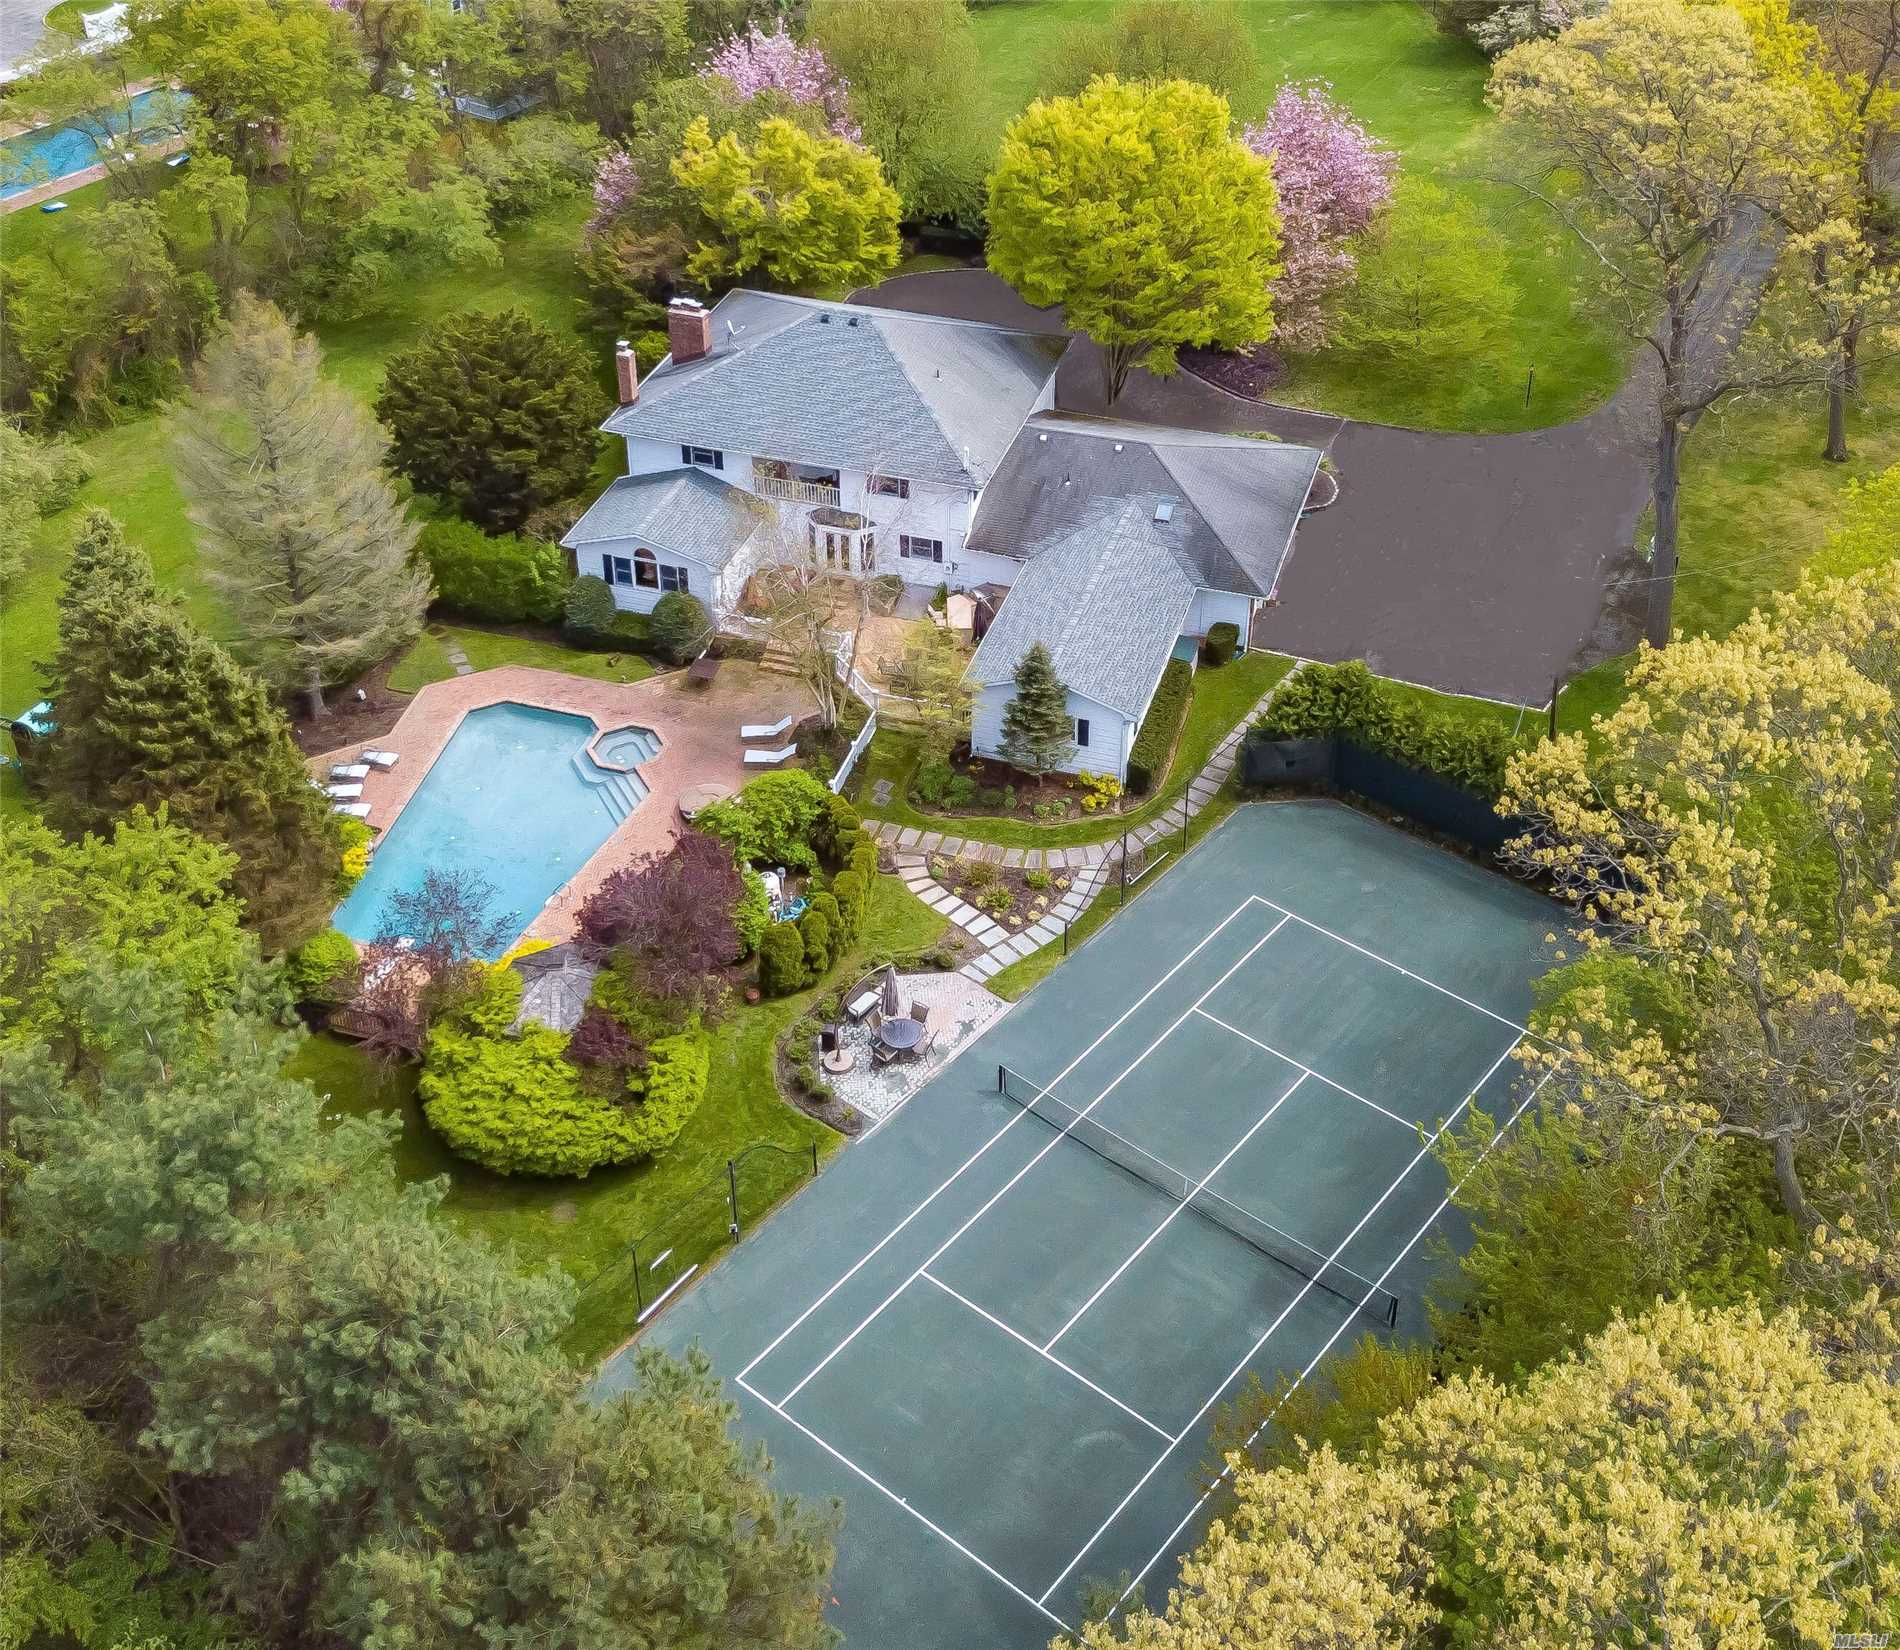 Tennis Lovers Paradise In The Heart Of North Shore Gold Coast. Private Gated Drive Leads To Elegant Country Colonial On 2.4 Acres Of Lush Greenery With Olympic Heated Pool, Delightful Gazebo, Har-Tru Tennis Court, And An Outdoor Entertainment Area. New Kitchen With Top-Of-The-Line Appliances, Open Floor Plan, Three Room Separate Guest Suite. Reasonable Taxes. Full House Generator. Convenient To Miracle Mile & Transportation. Highly Rated Locust Valley S.D.